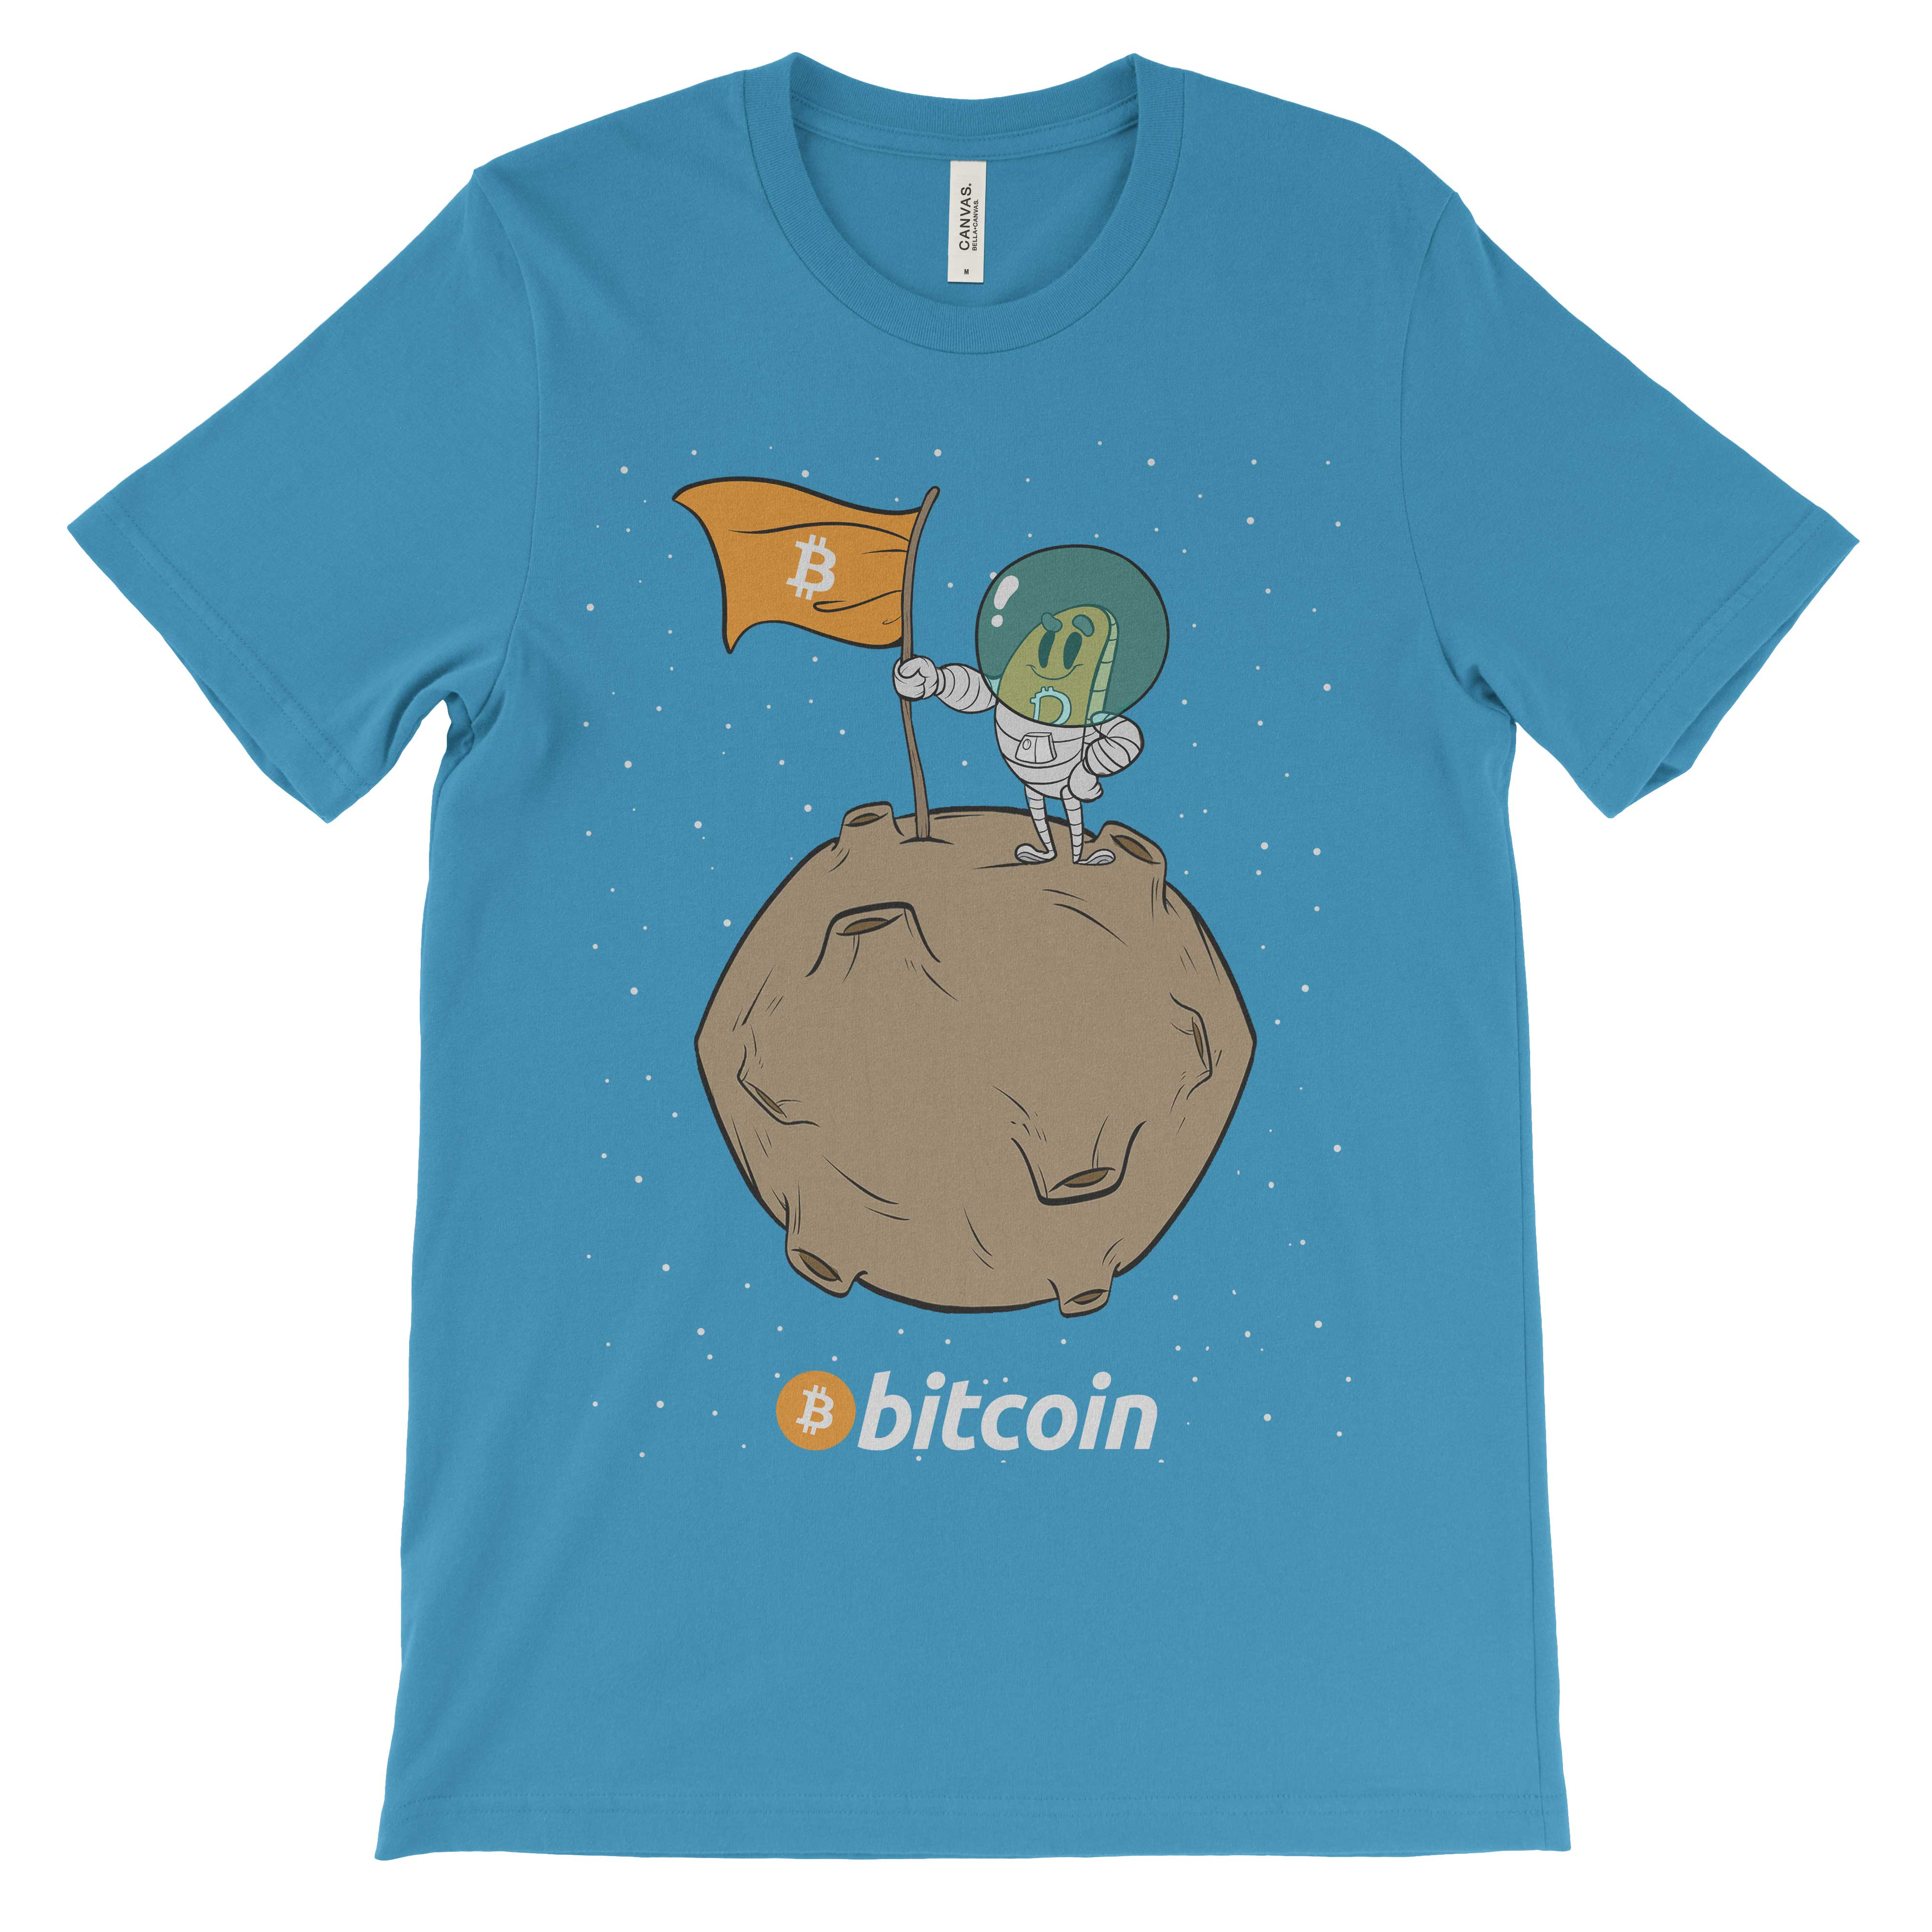 bitcoin cryptocurrency astronaut to the moon landing t shirt